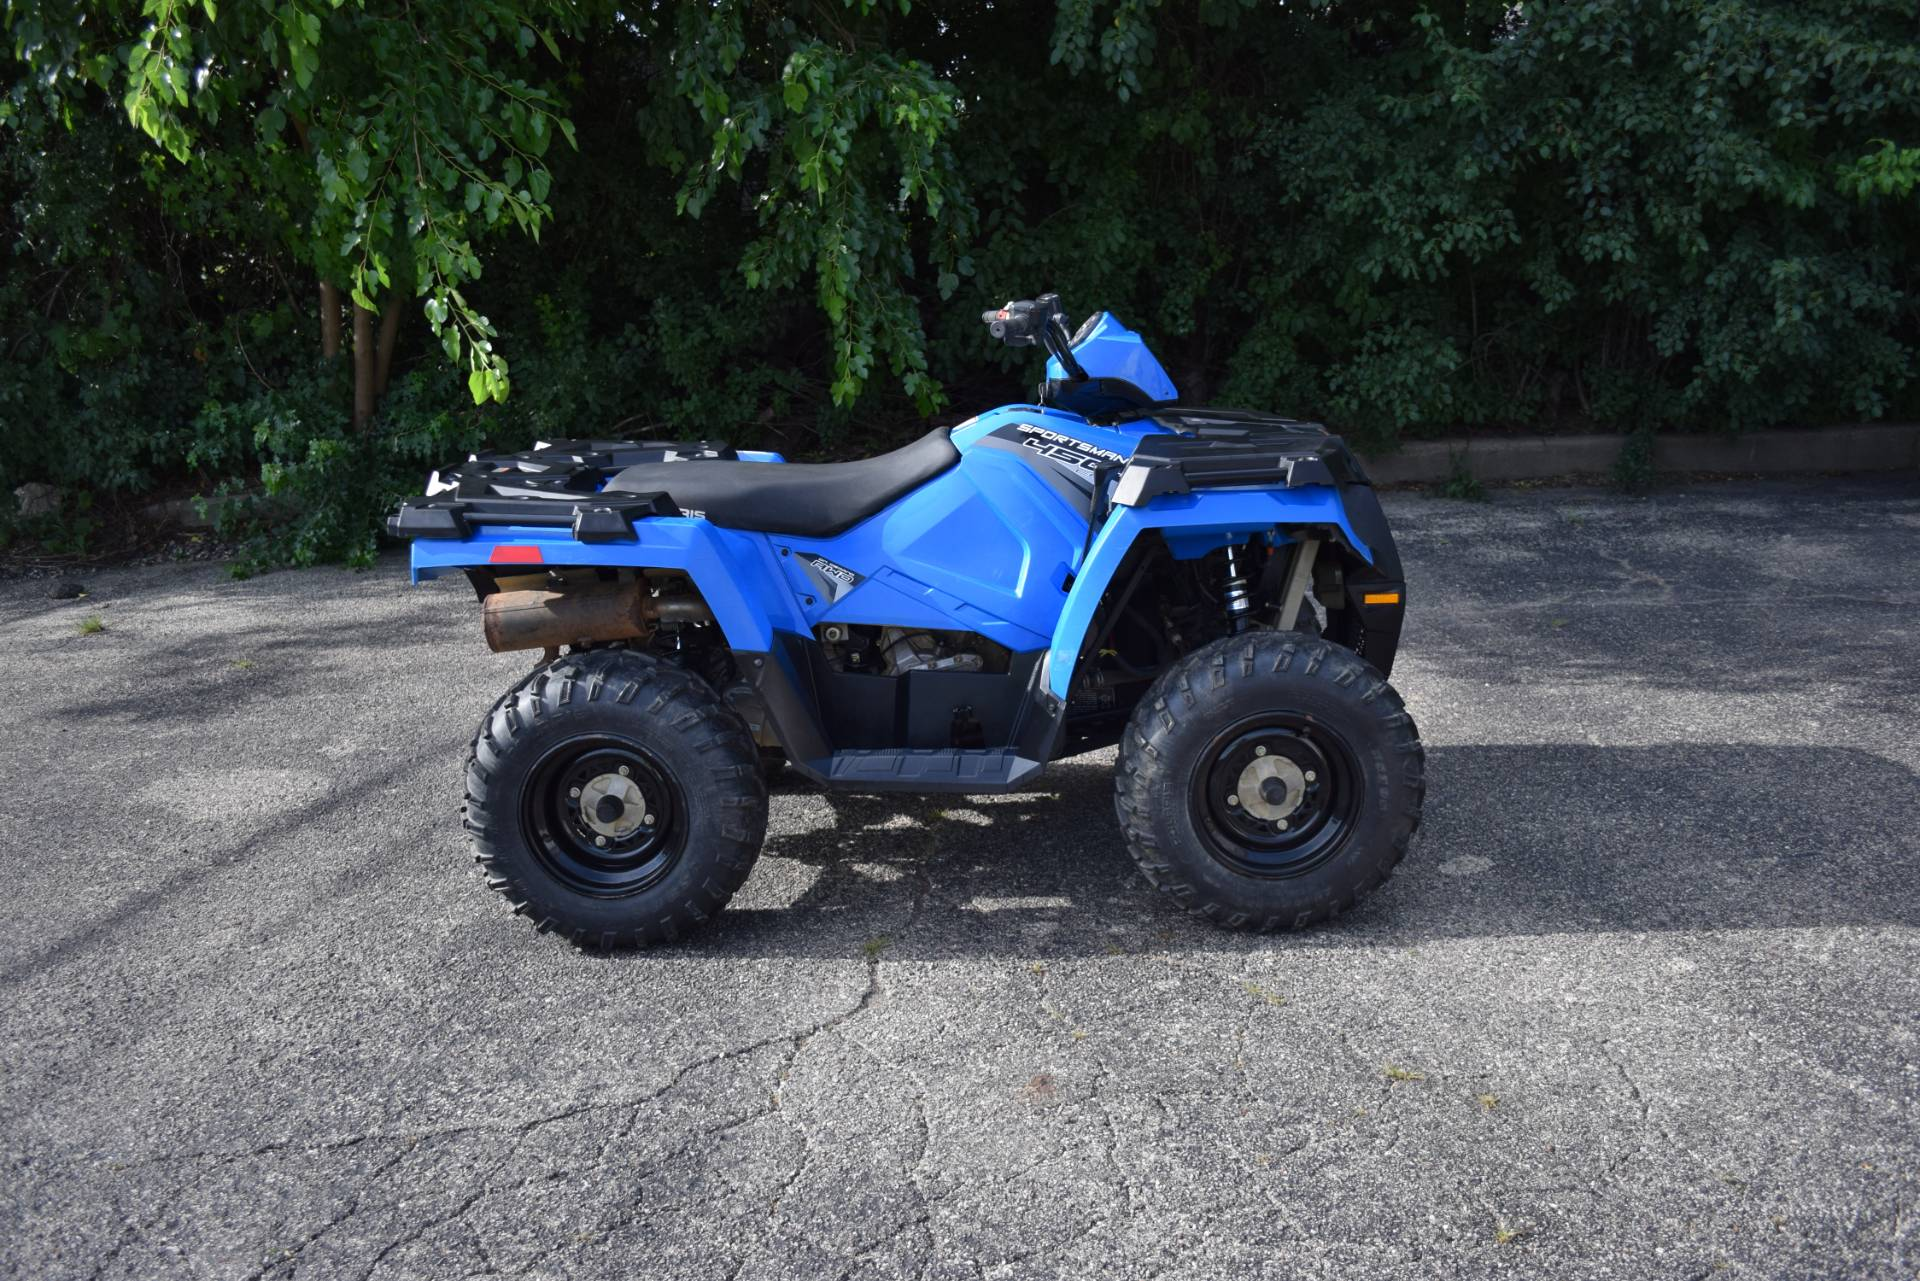 2017 Polaris Sportsman 450 H.O. in Wauconda, Illinois - Photo 1